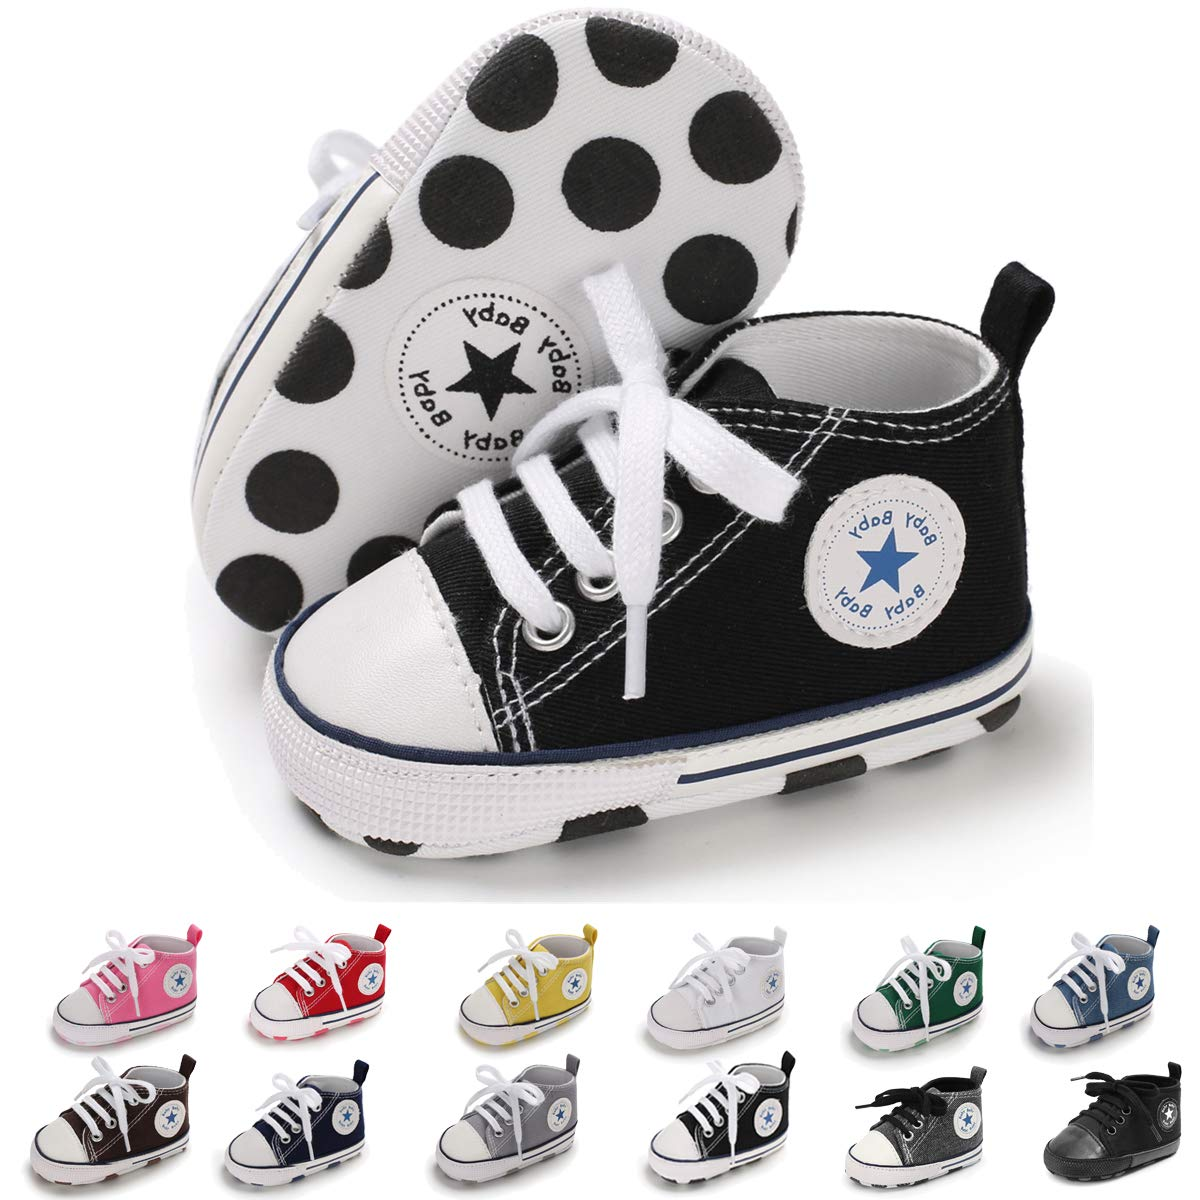 e78f05a9efe13 Sakuracan Baby Shoes Boys Girls Toddler High-Top Ankle Canvas Sneakers Soft  Sole Newborn Infant First Walkers Crib Shoes